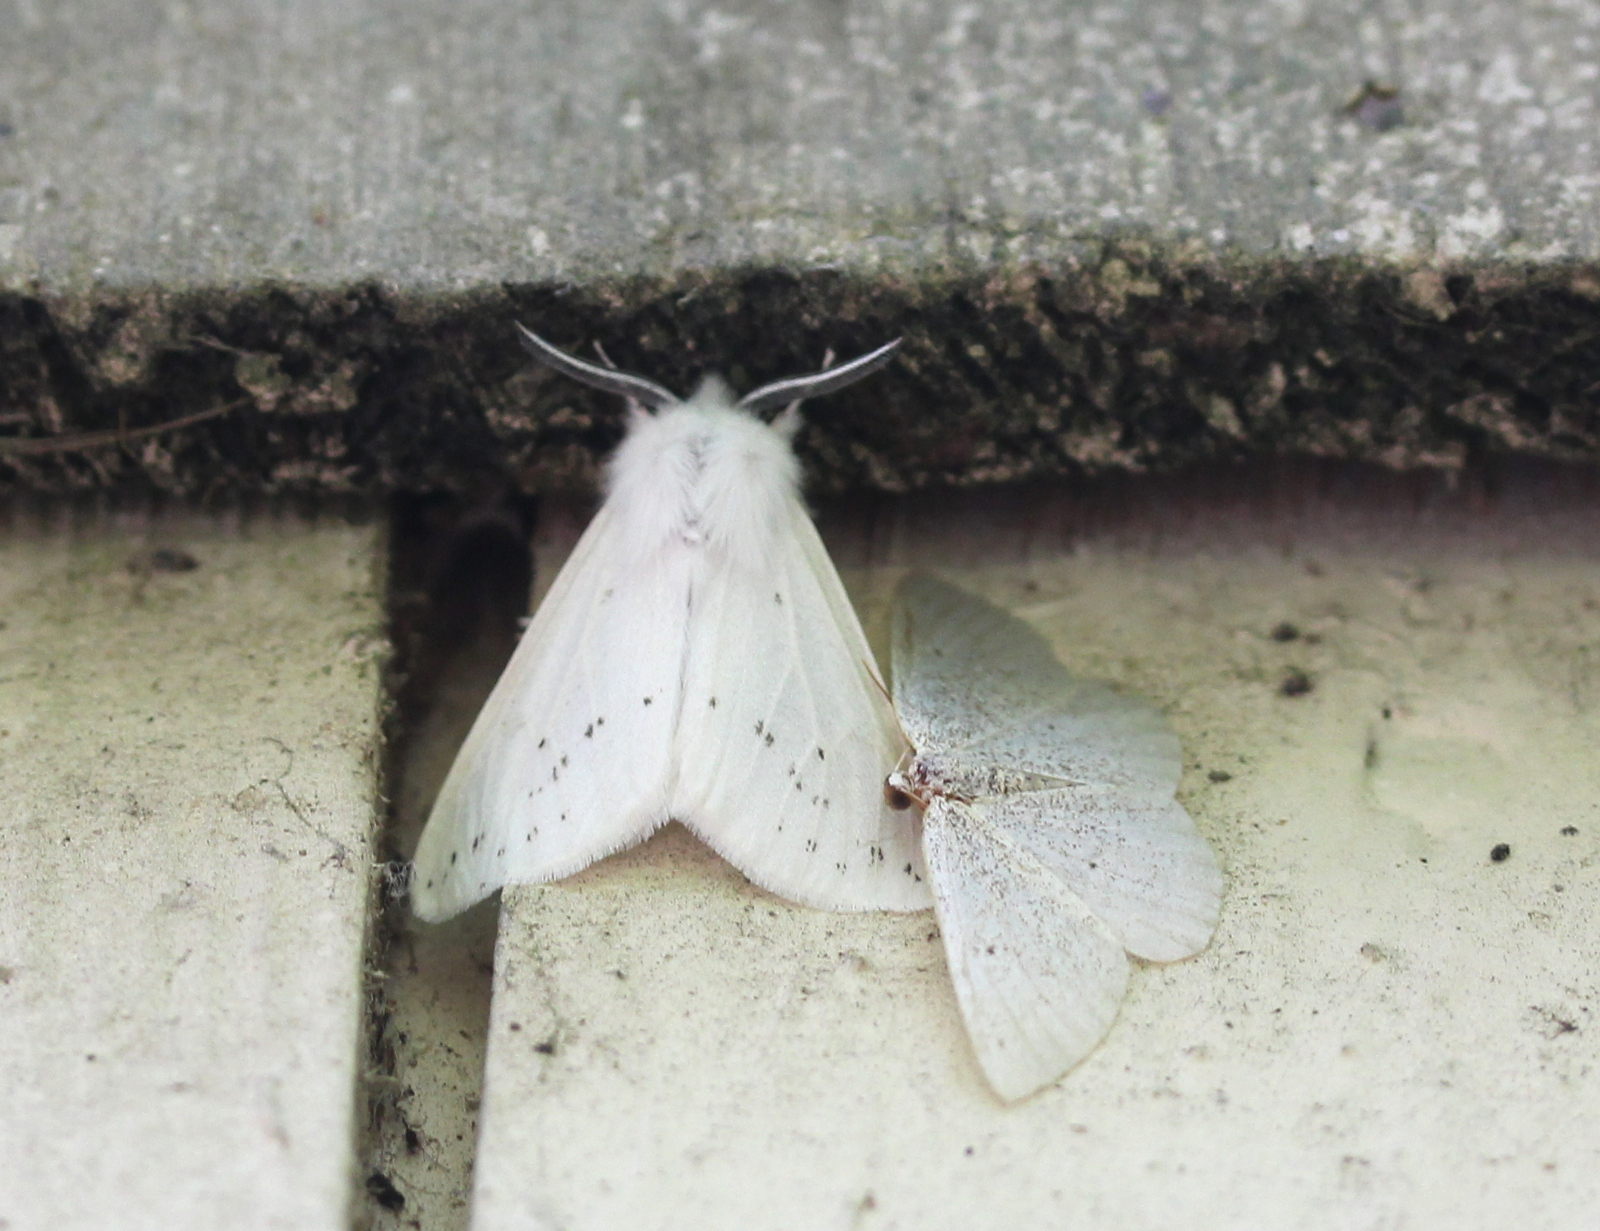 Agreeable Tiger Moth - dorsal view on wall